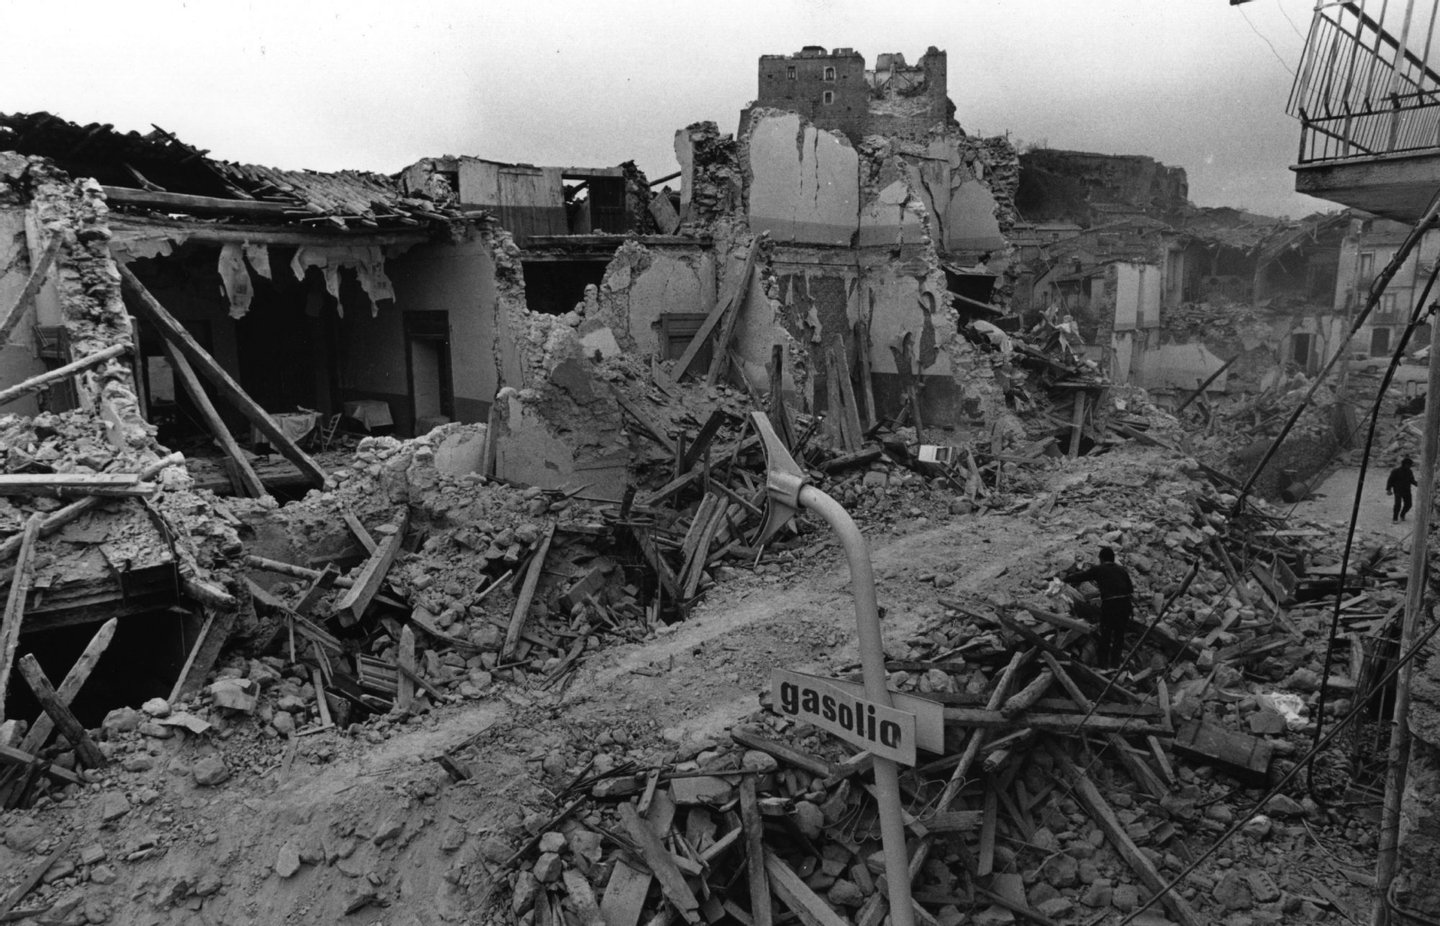 circa 1980: Ruins left after an earthquake hit Southern Italy. (Photo by Evening Standard/Getty Images)